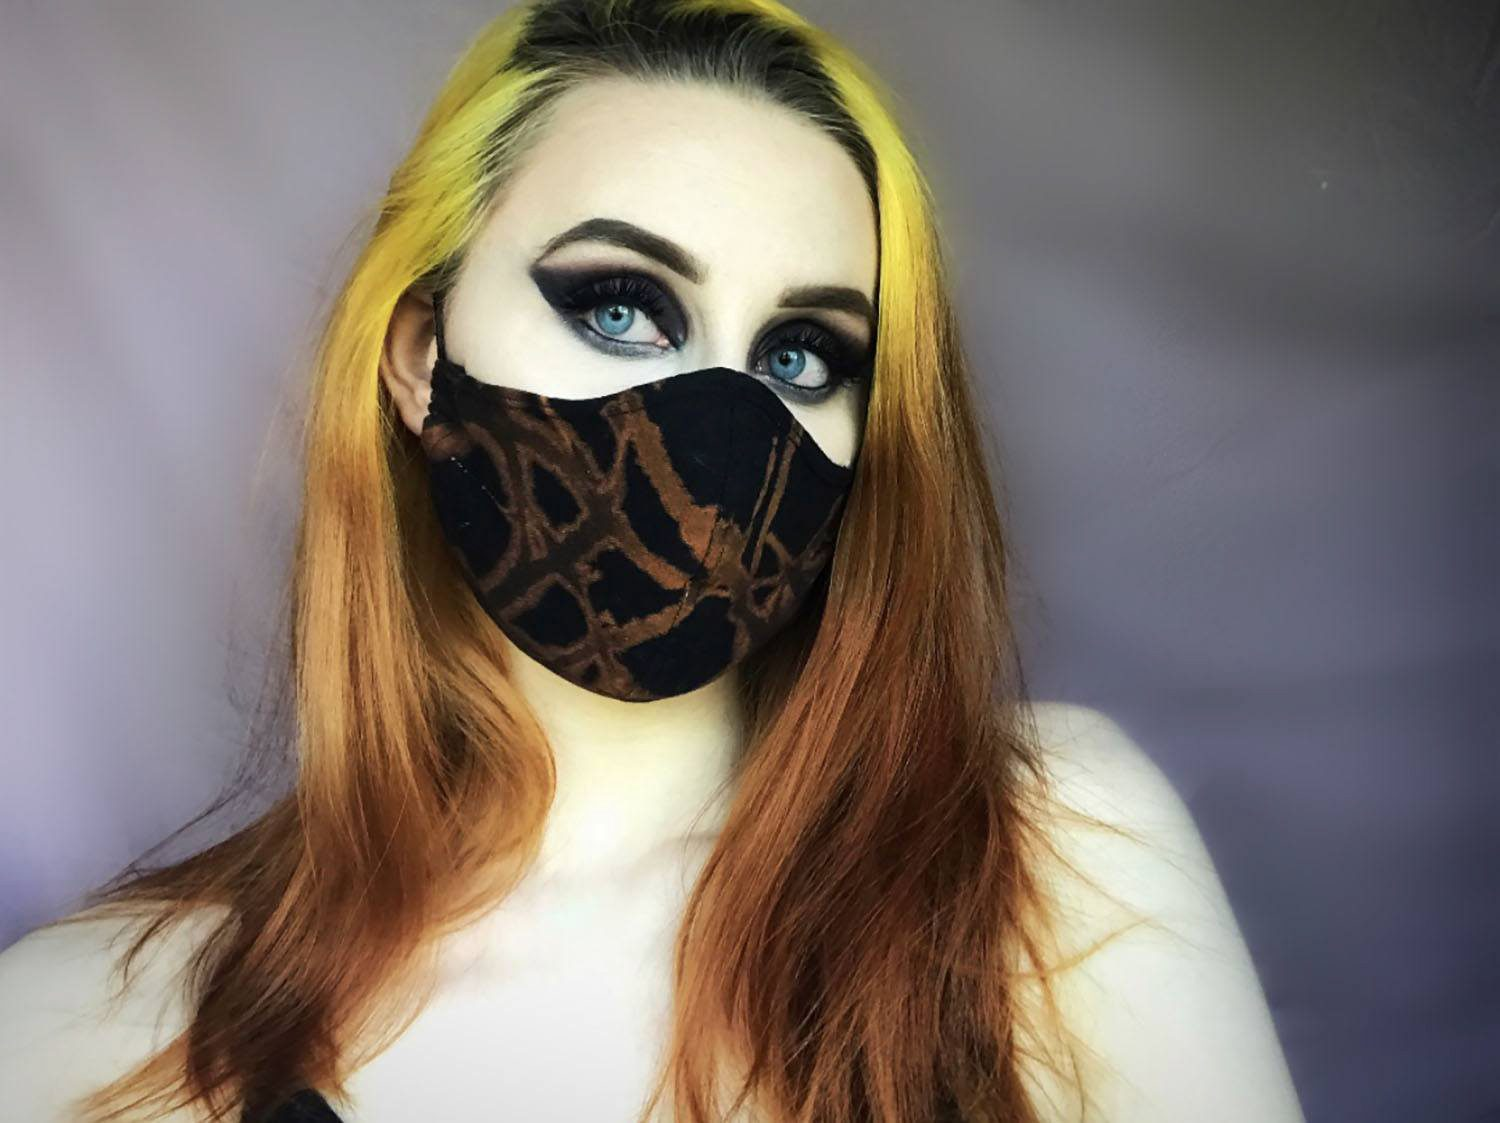 Hollie-Milne-Bleached-mask